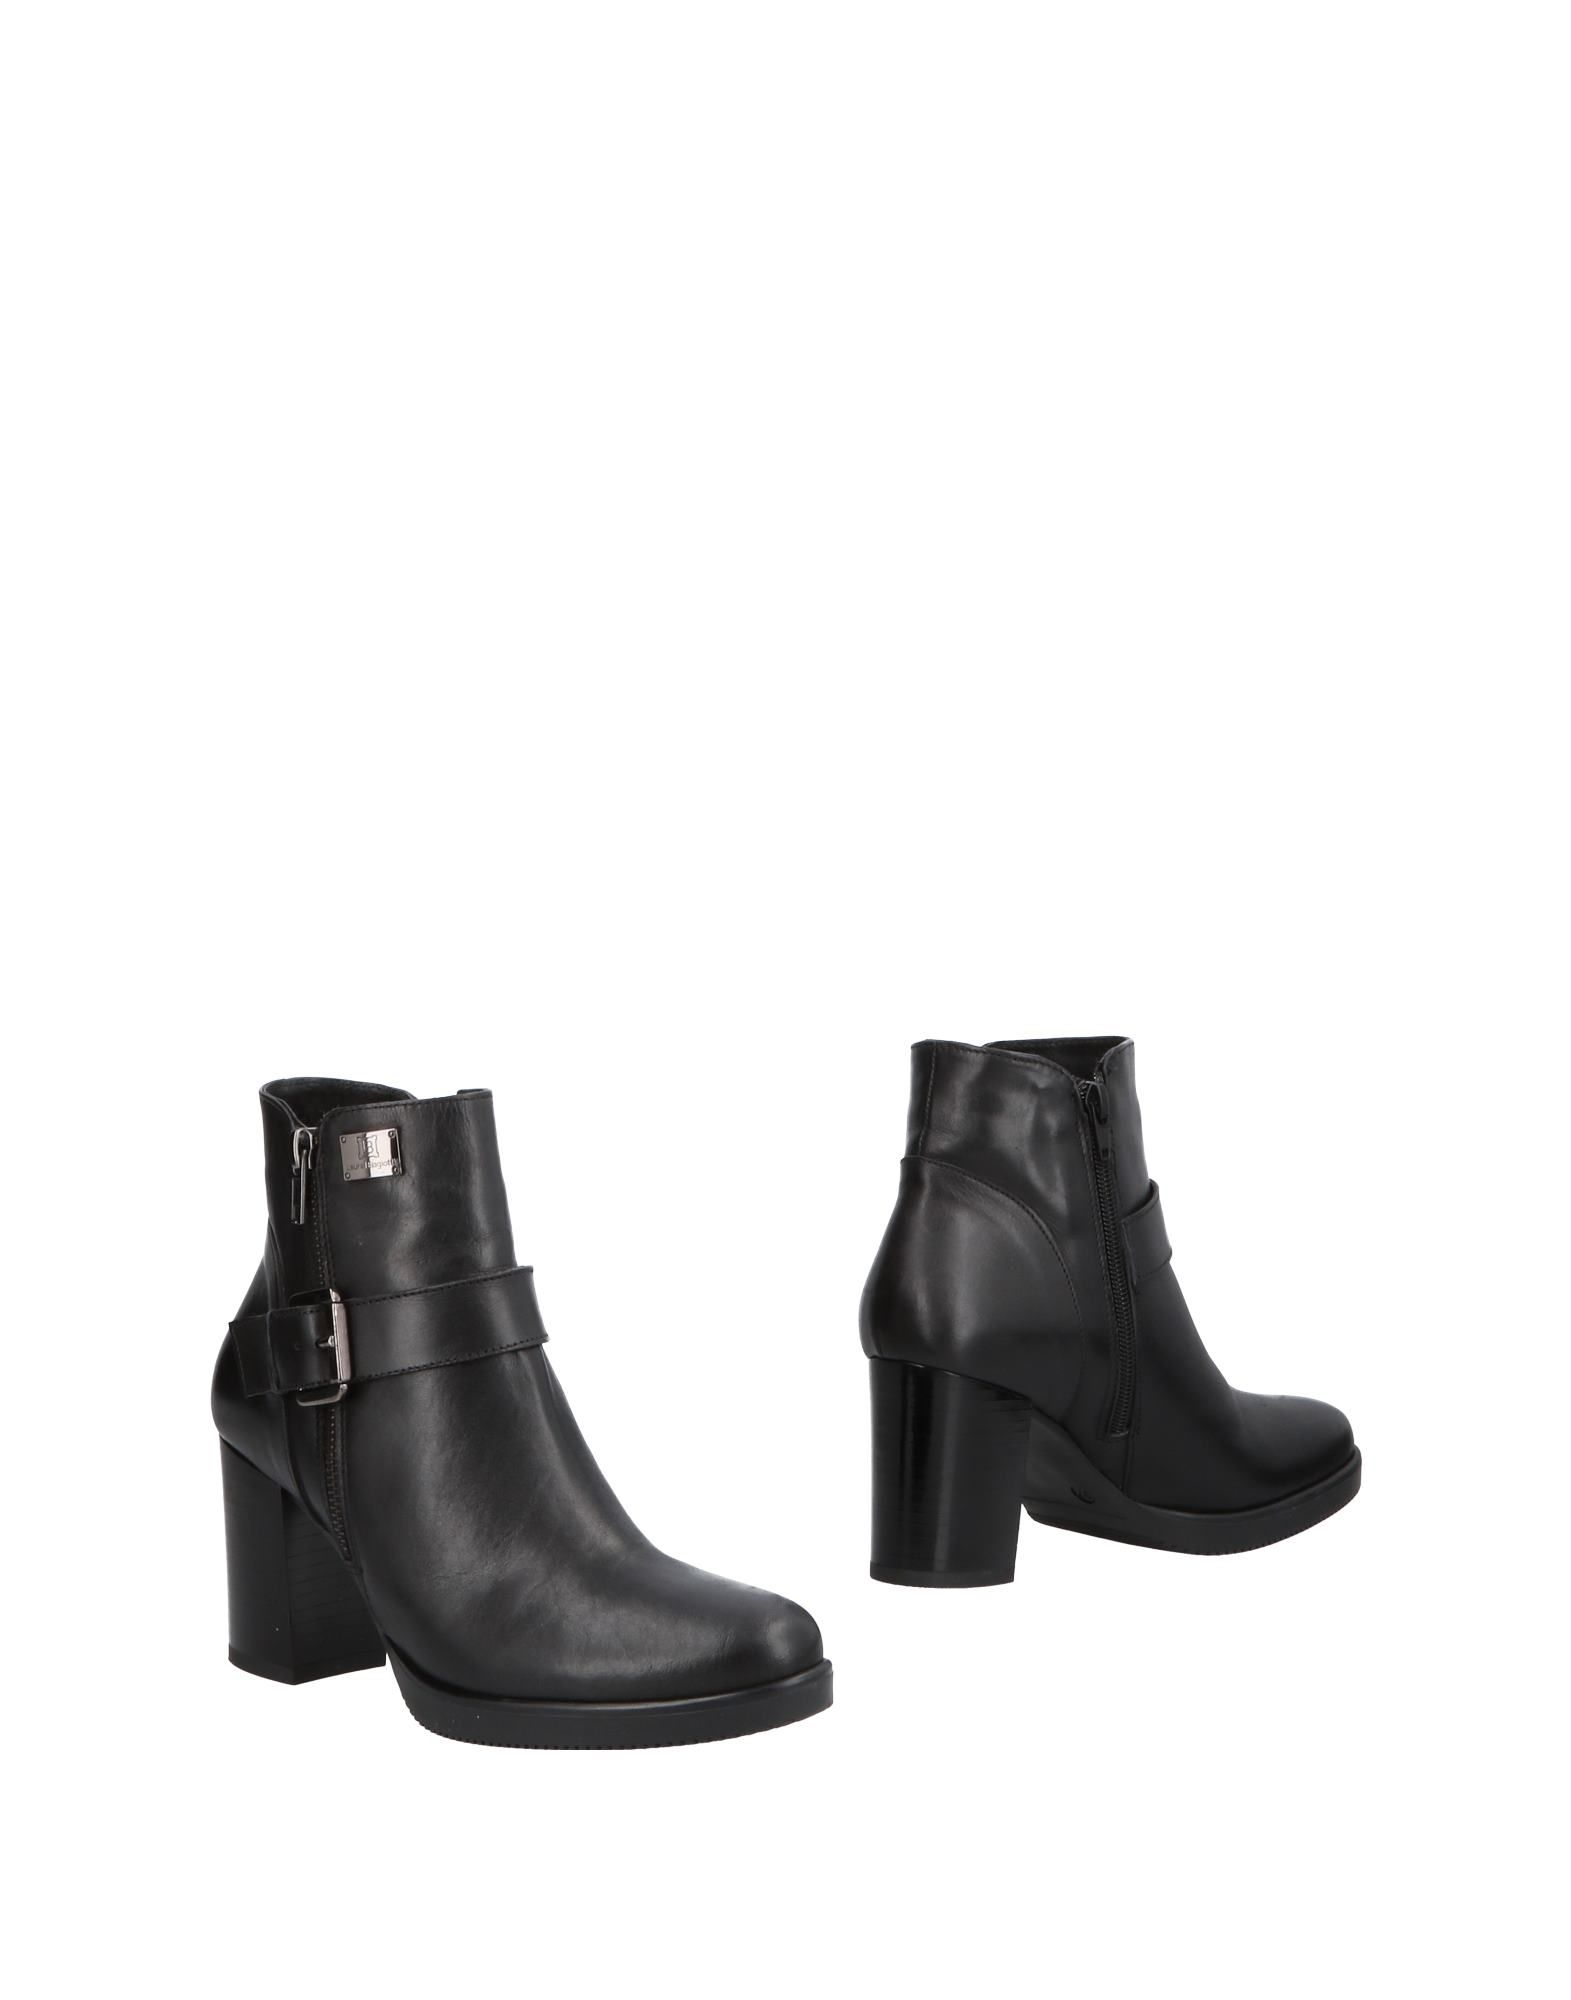 Laura Women Biagiotti Ankle Boot - Women Laura Laura Biagiotti Ankle Boots online on  Canada - 11504542FN 1ce23b